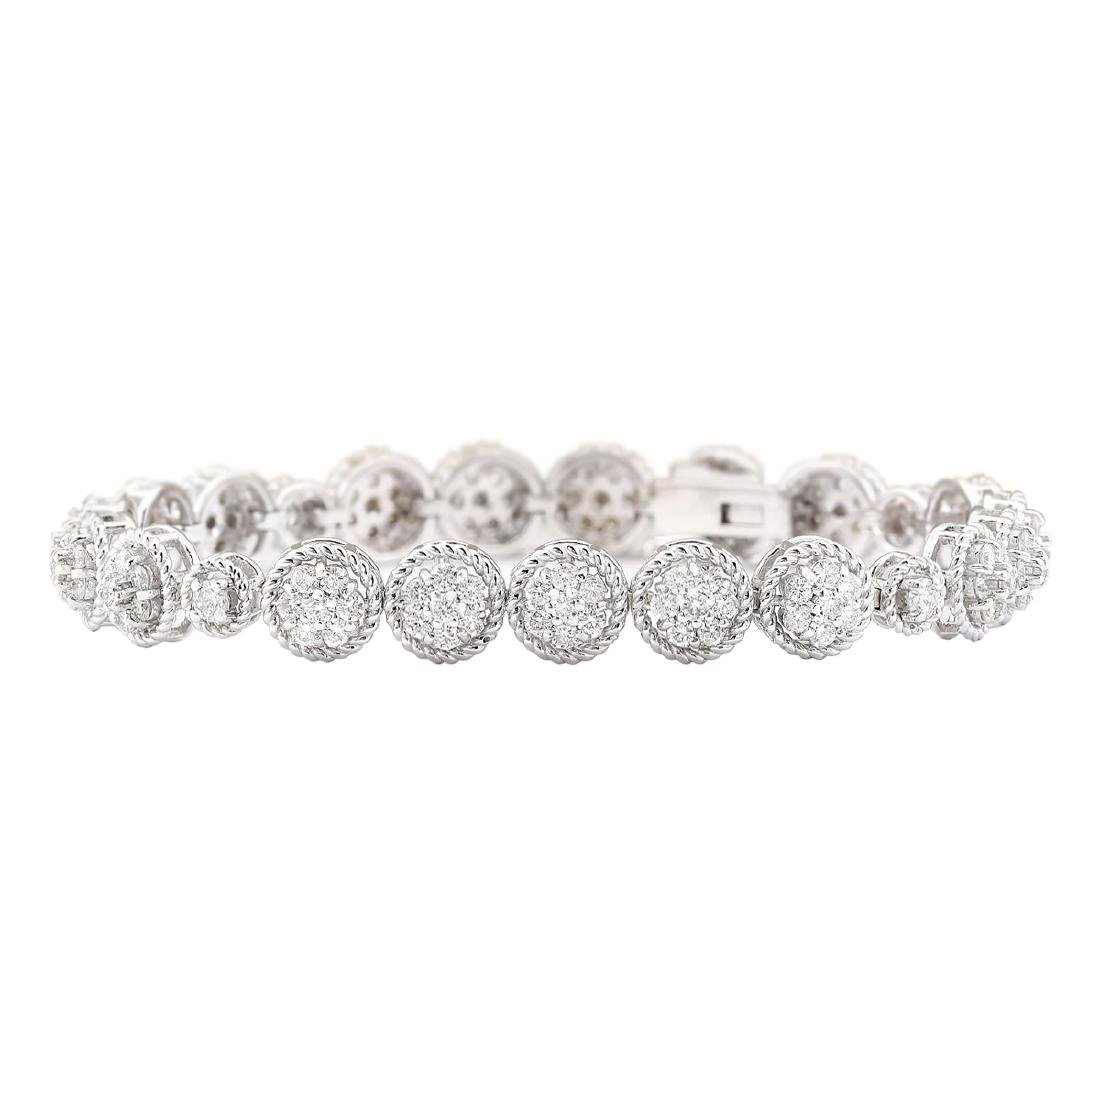 3.75 CTW Natural Diamond Bracelet In 18K White Gold